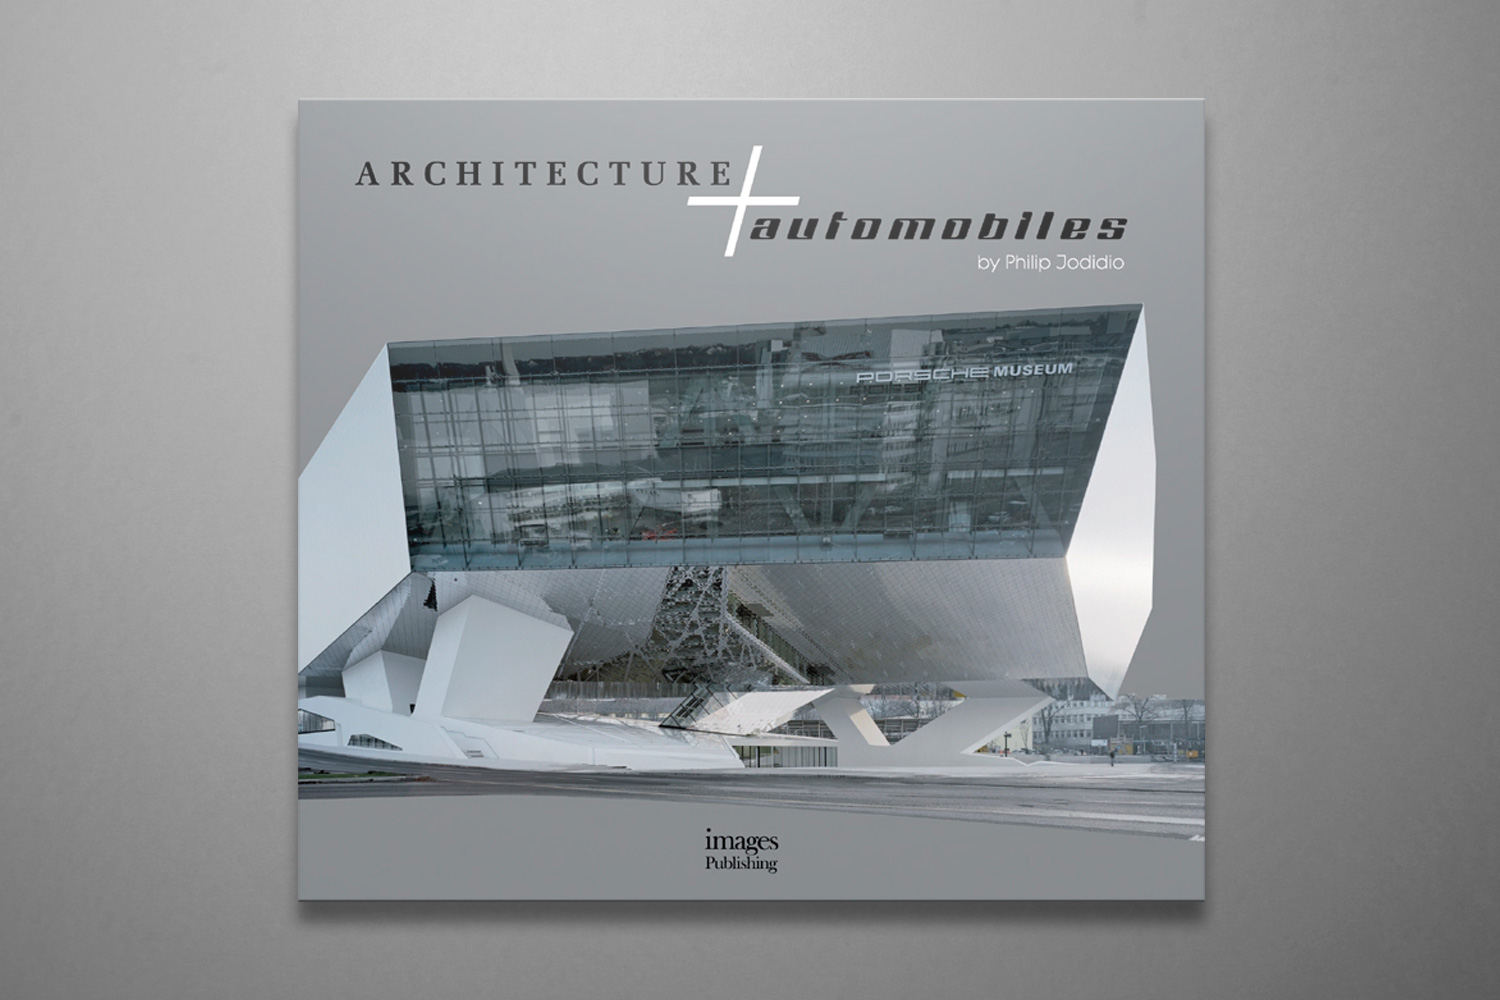 Architecture and Automobiles - Philip JodidioImages Publishing Group Pty Ltd2011ISBN-10 : 186470330XISBN-13 : 978-1864703306